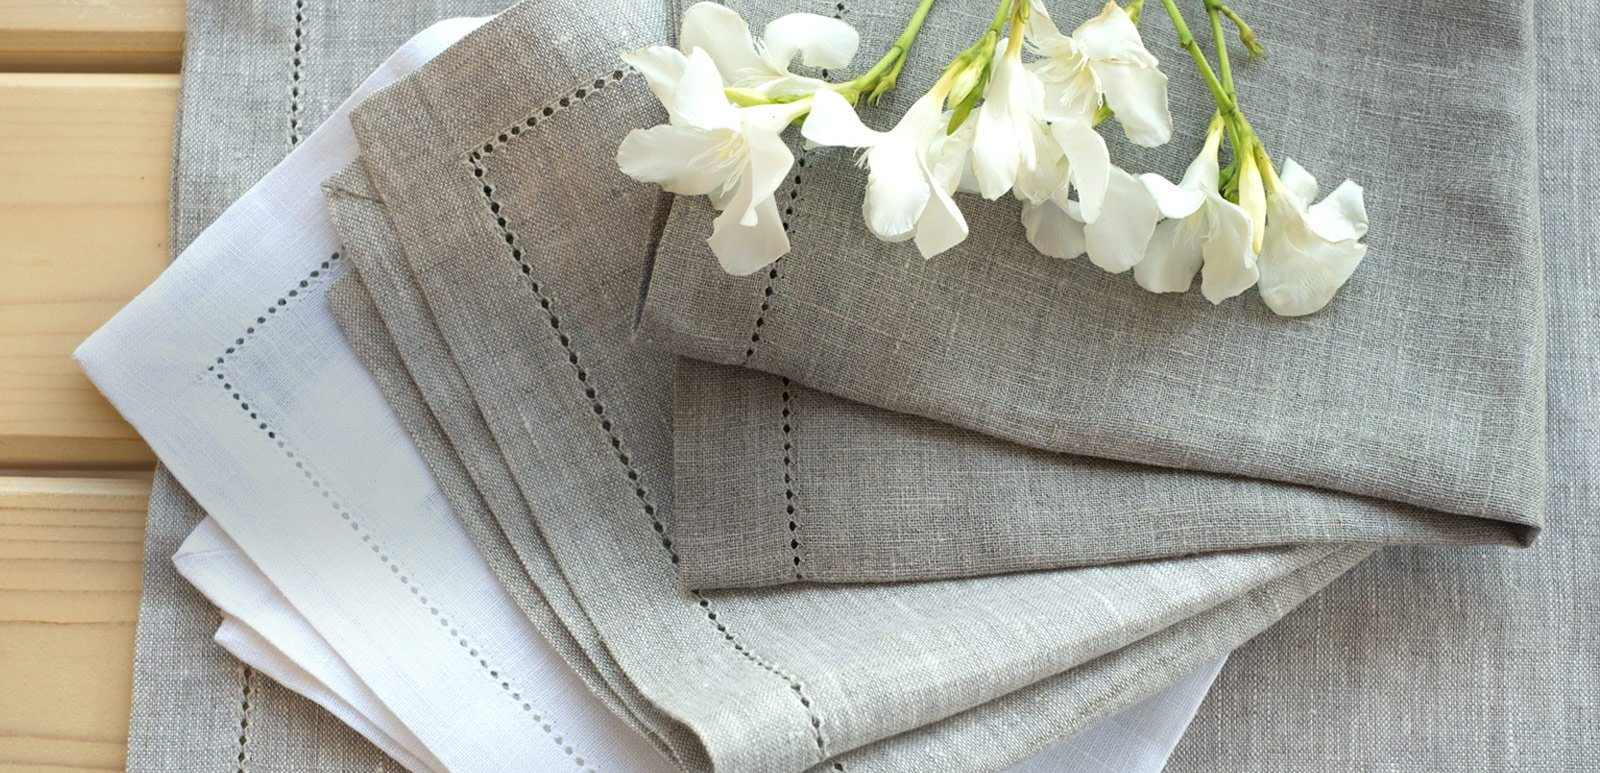 HEMSTITCH TABLE LINEN 